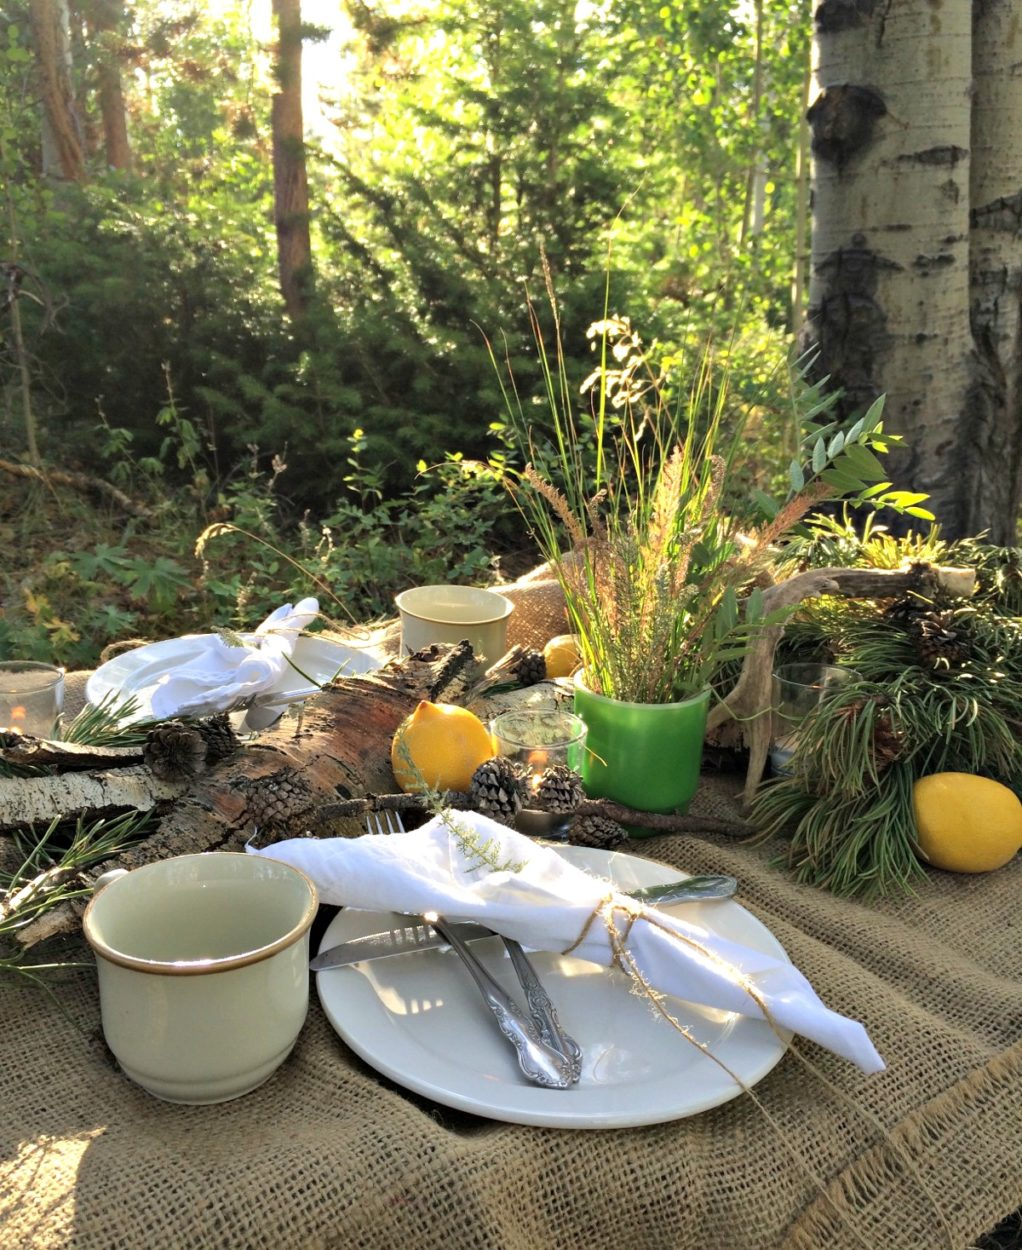 A picnic in the woods is not so hard when you use what you have including using nature as the centerpiece. Bargain decor is right at your finger tips sometimes. This woodland picnic is cozy and romantic.